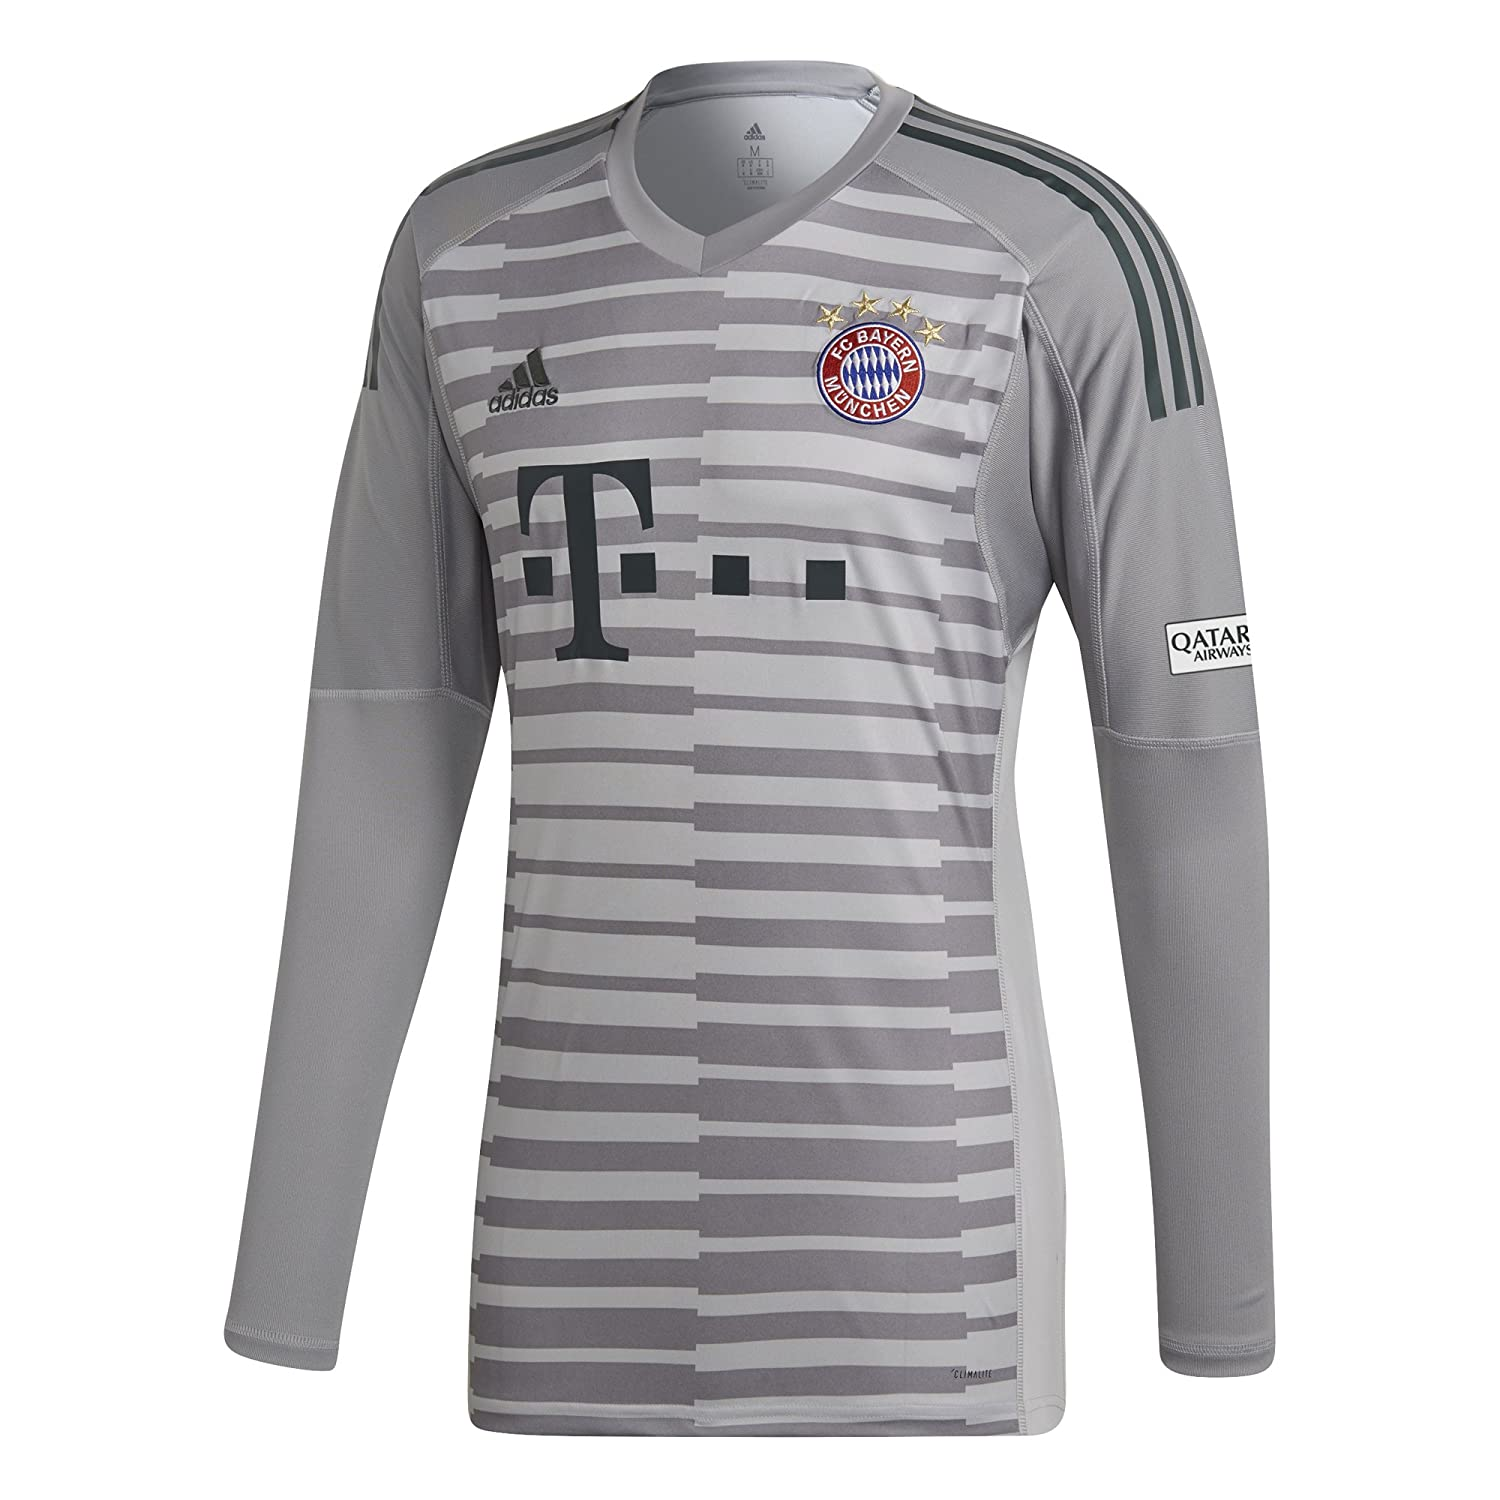 separation shoes 158e7 14159 adidas 2018-2019 Bayern Munich Home Goalkeeper Shirt